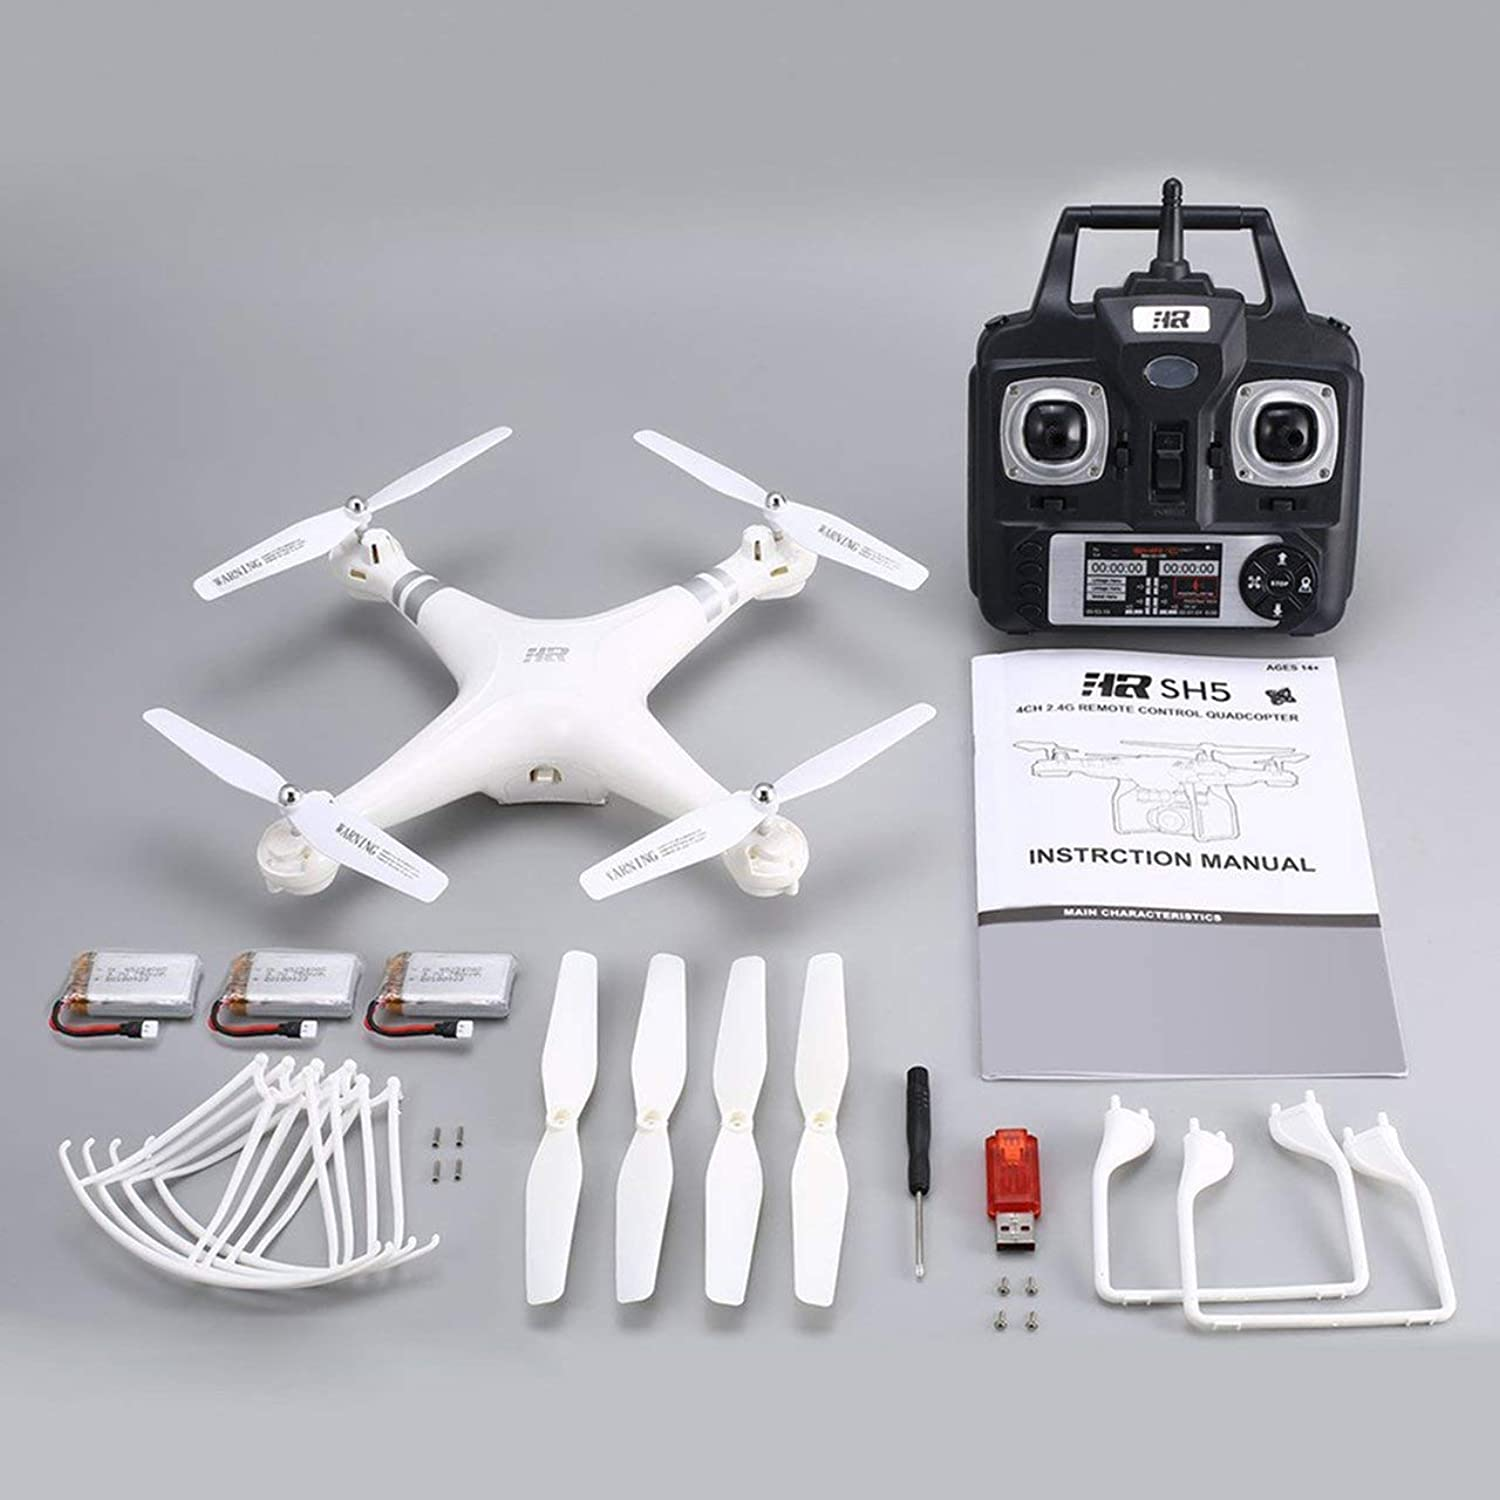 Romerofs RC Quadcopter Upgraded SH5HD Smart Drone RC Quadcopter with Altitude Hold Headless Mode One Key Return LED Light Control Speed 3 Batteries